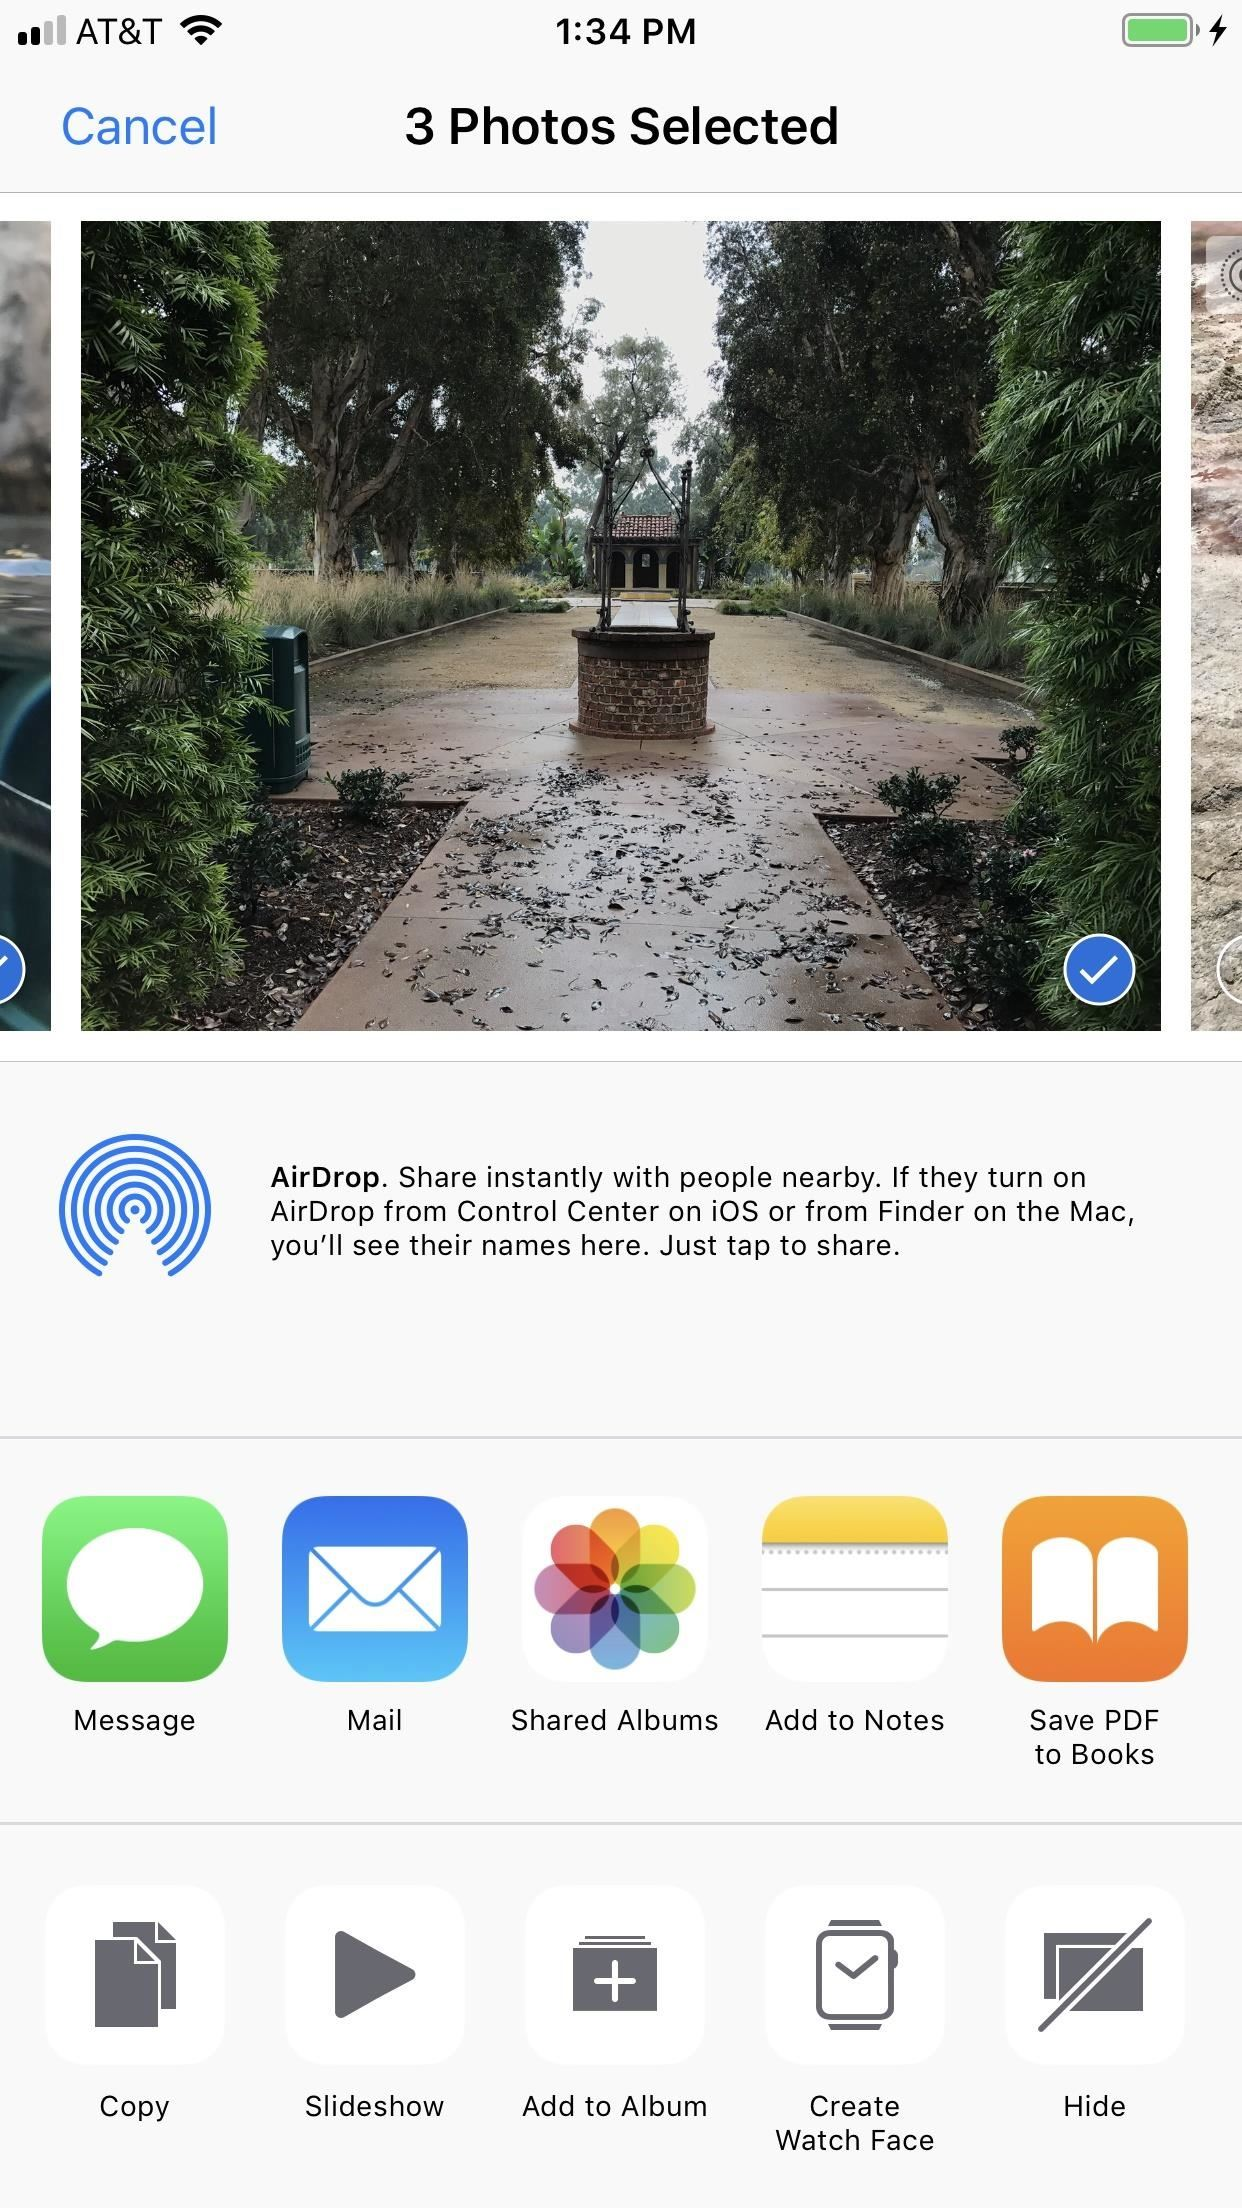 'For You' Suggestions: How to Share iCloud Photo Albums in iOS 12 to Family & Friends